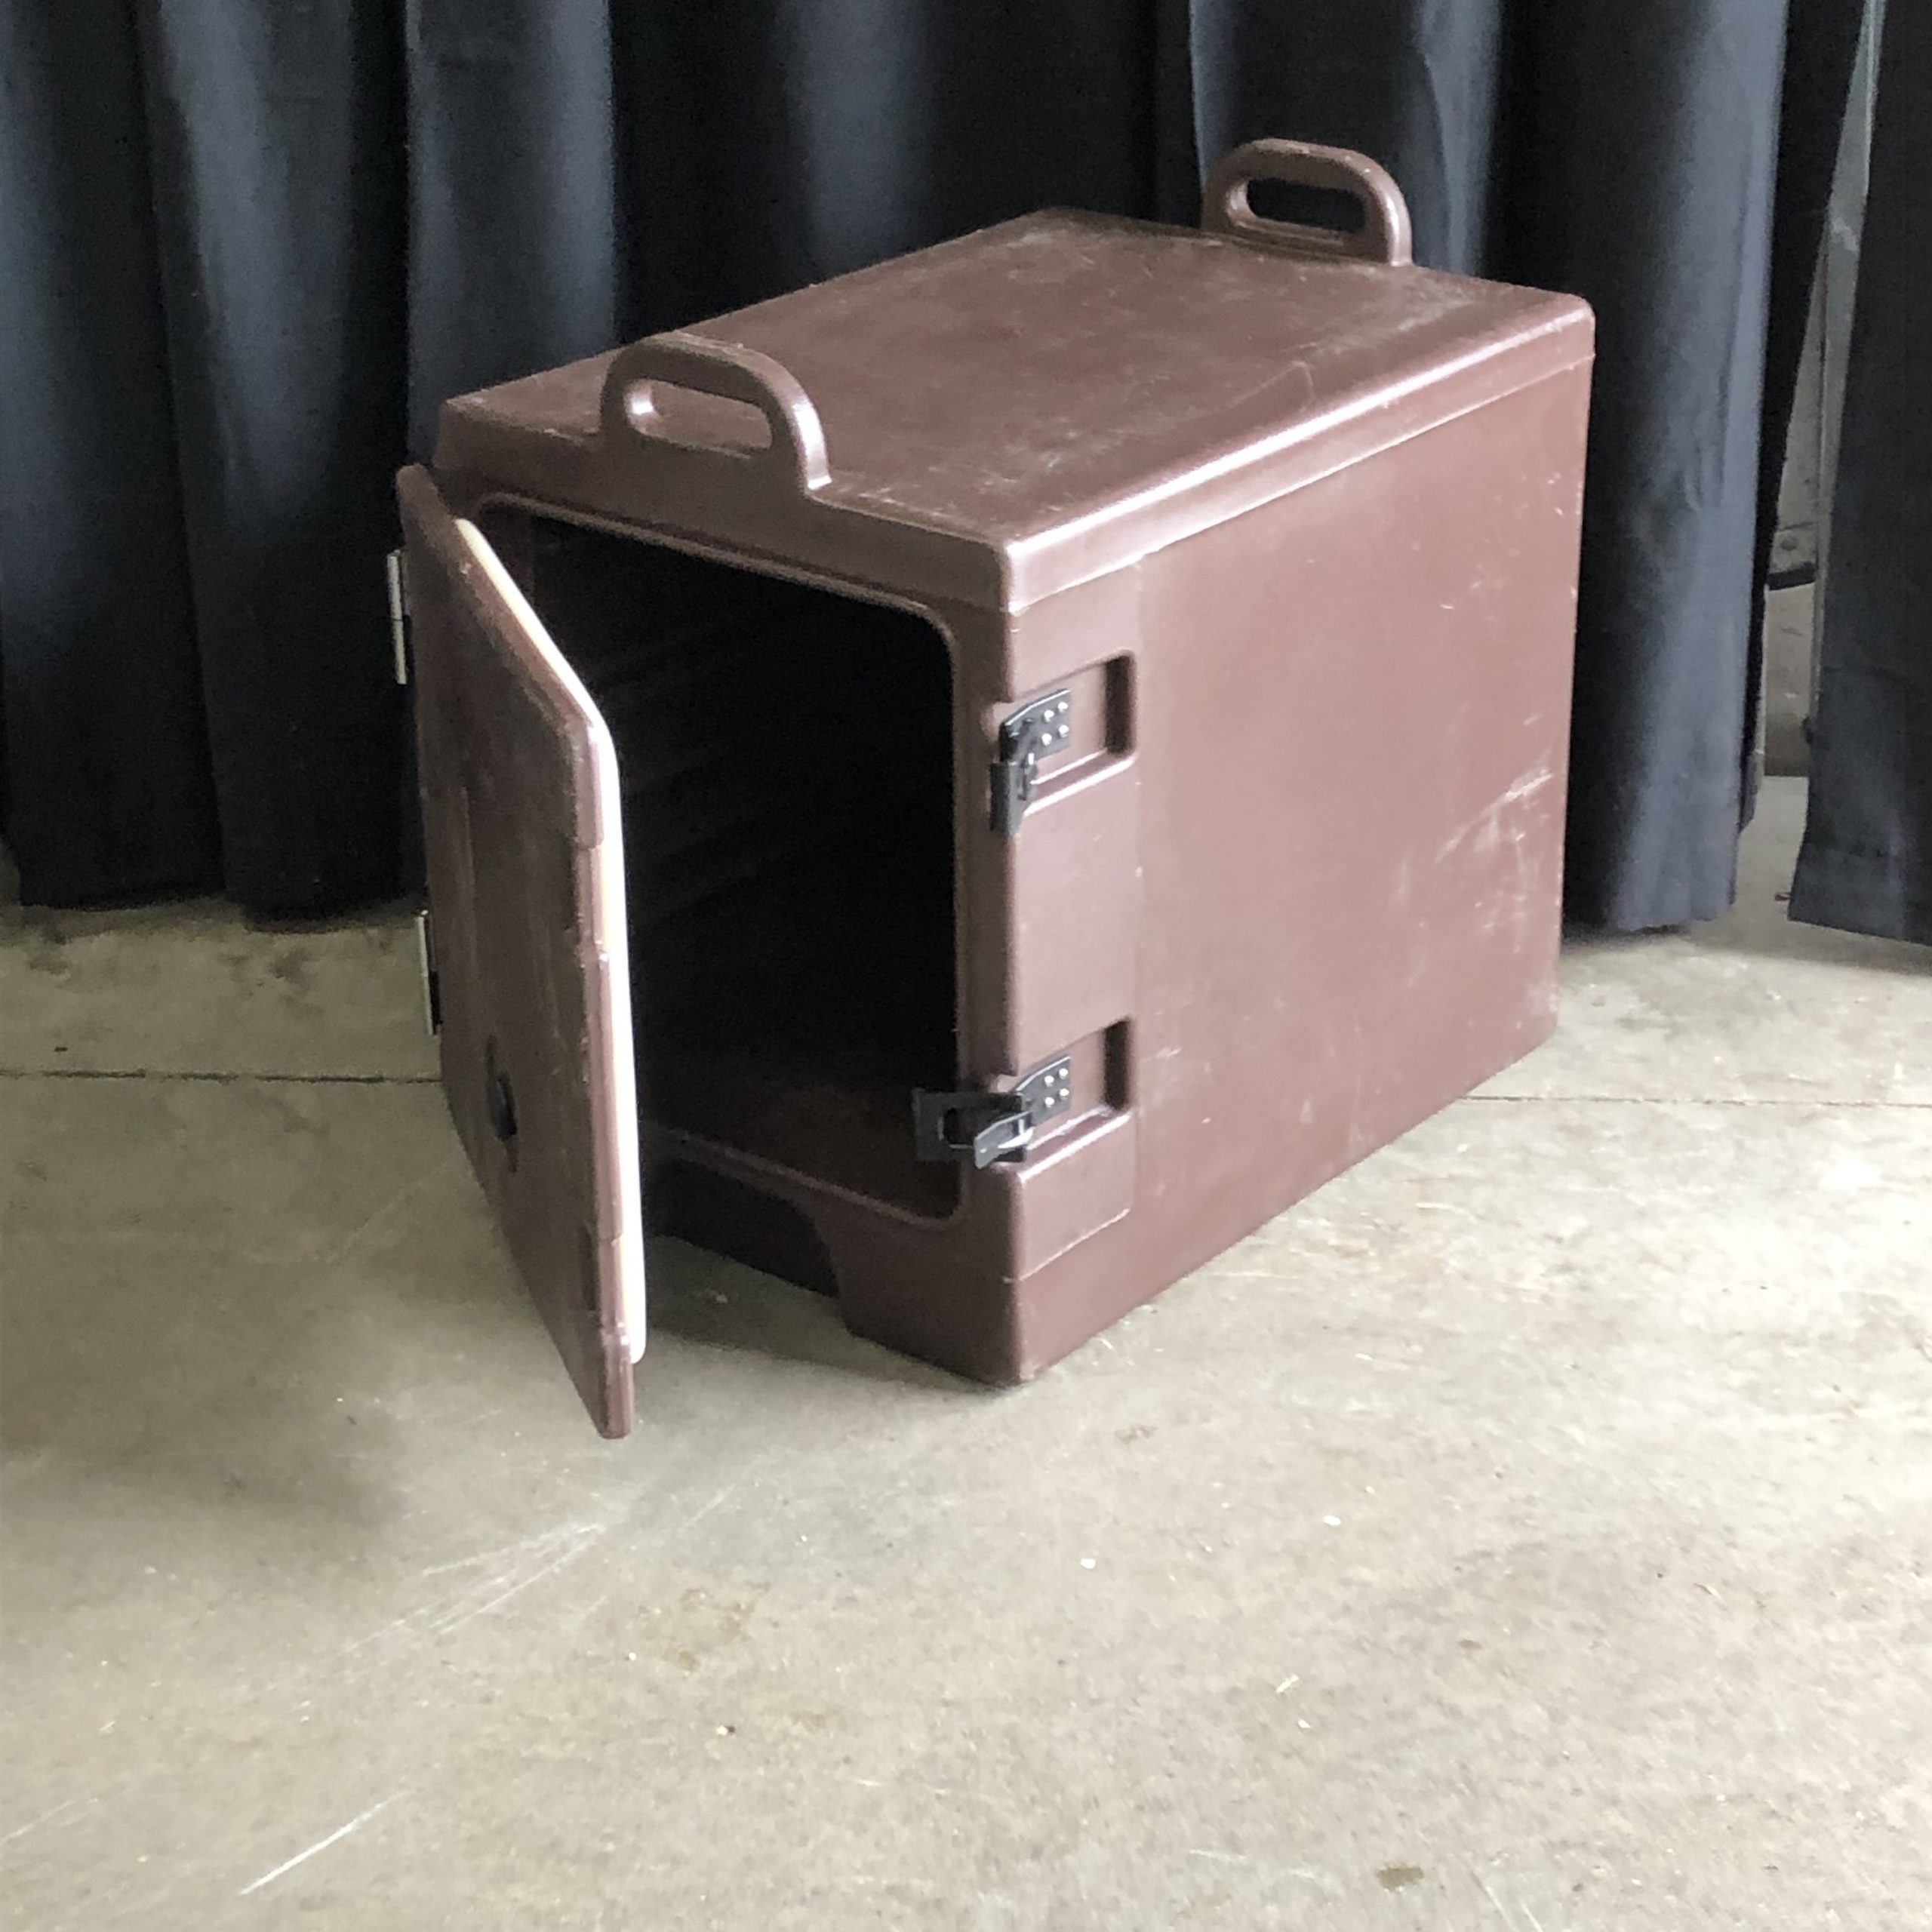 Insulated Food Carrier Image